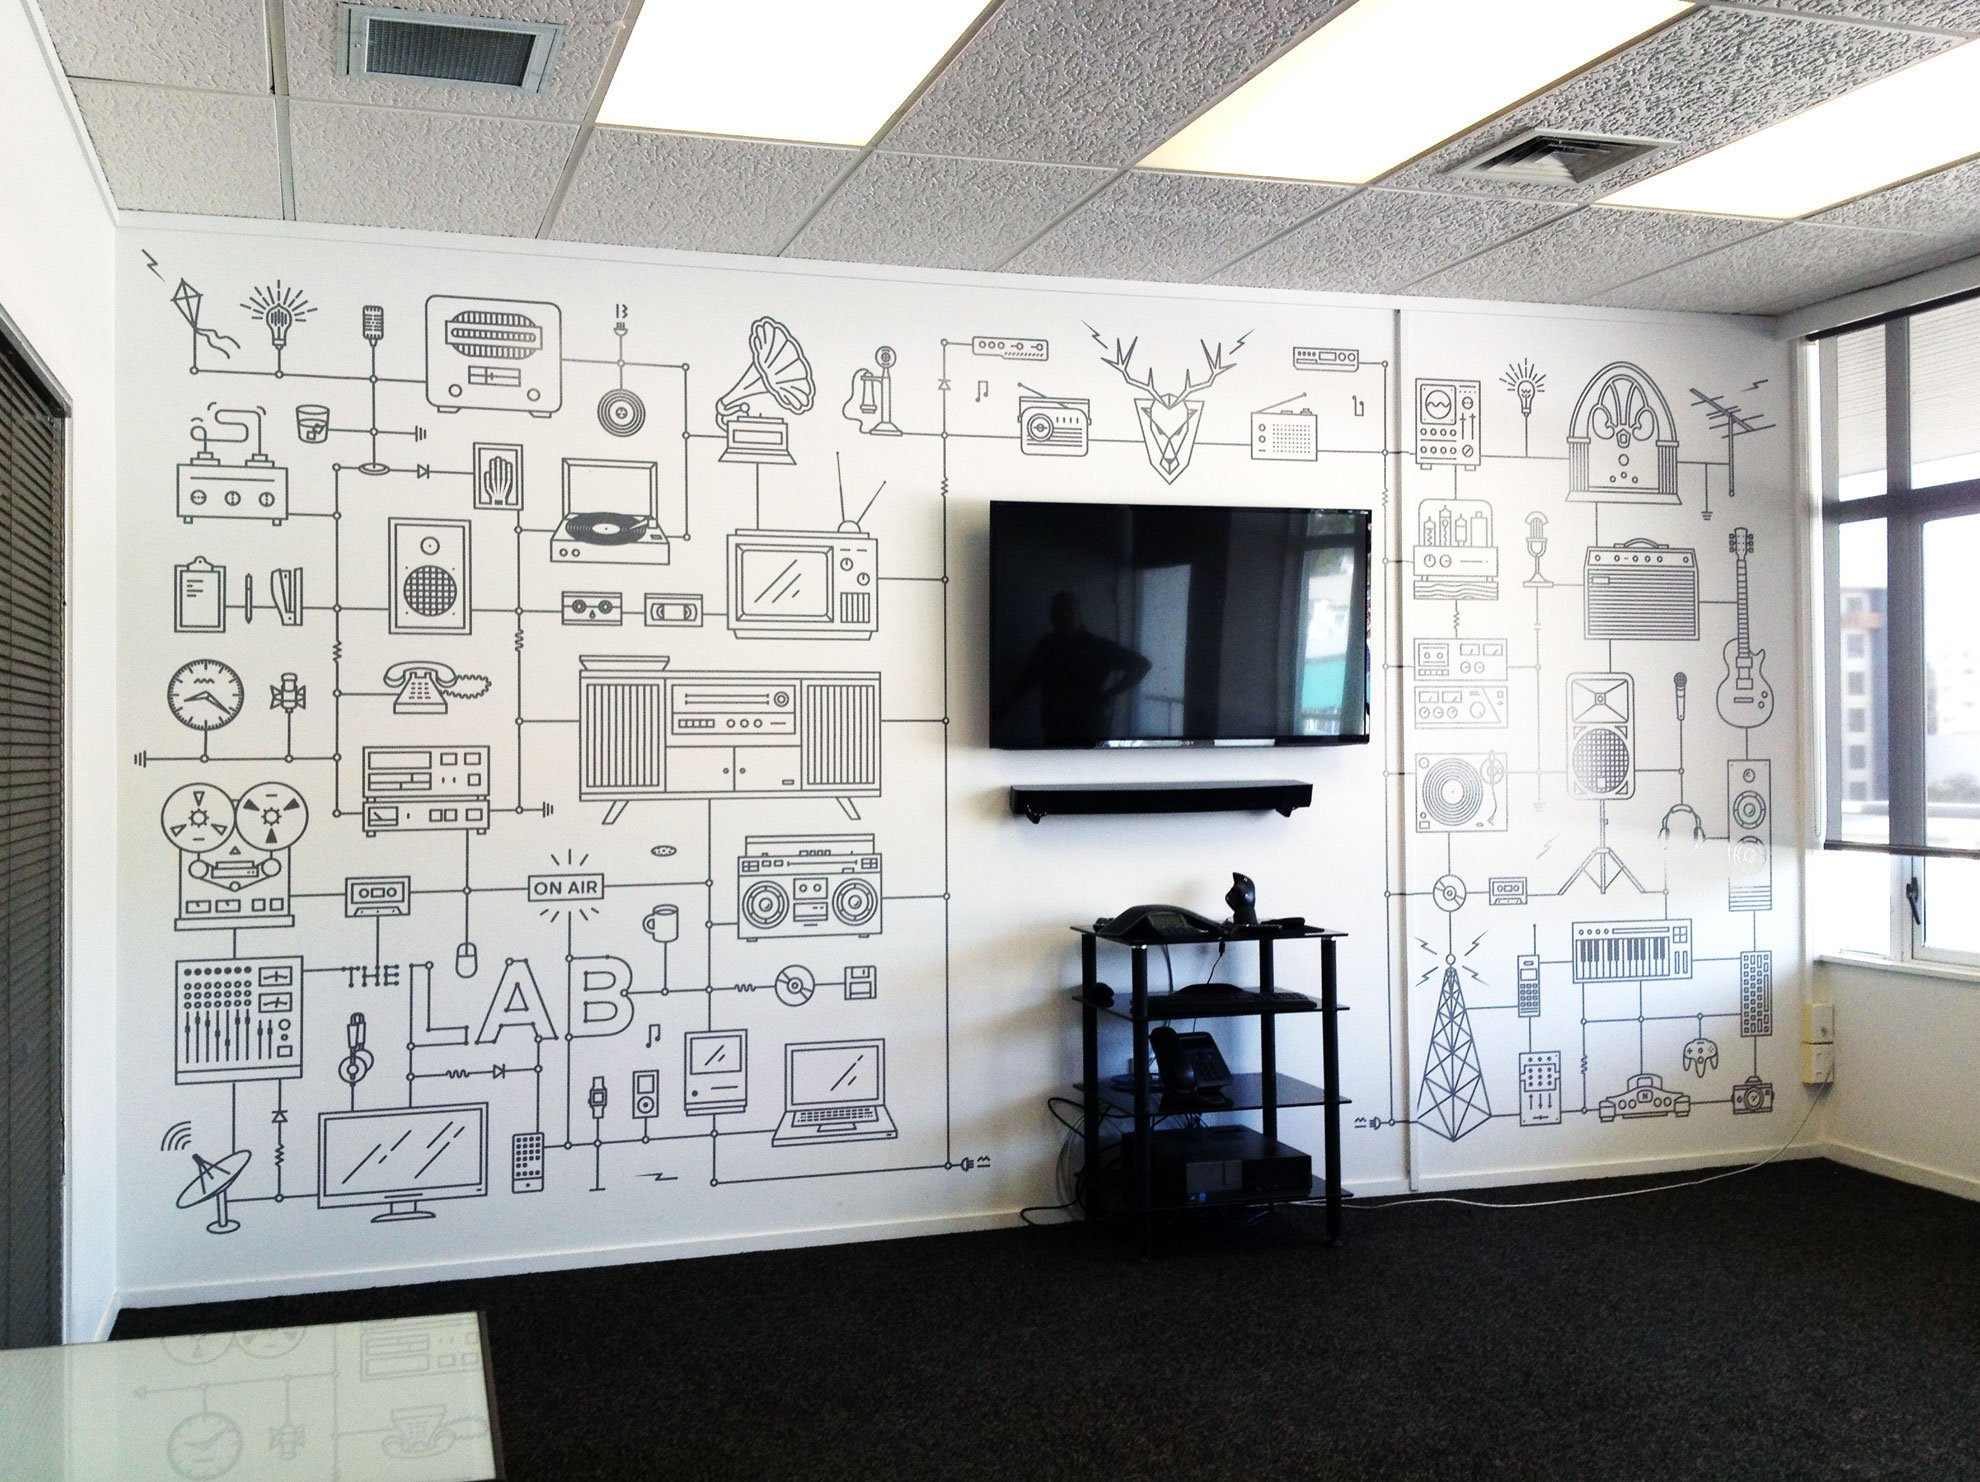 Computer cut vinyl graphics applied to meeting room wall